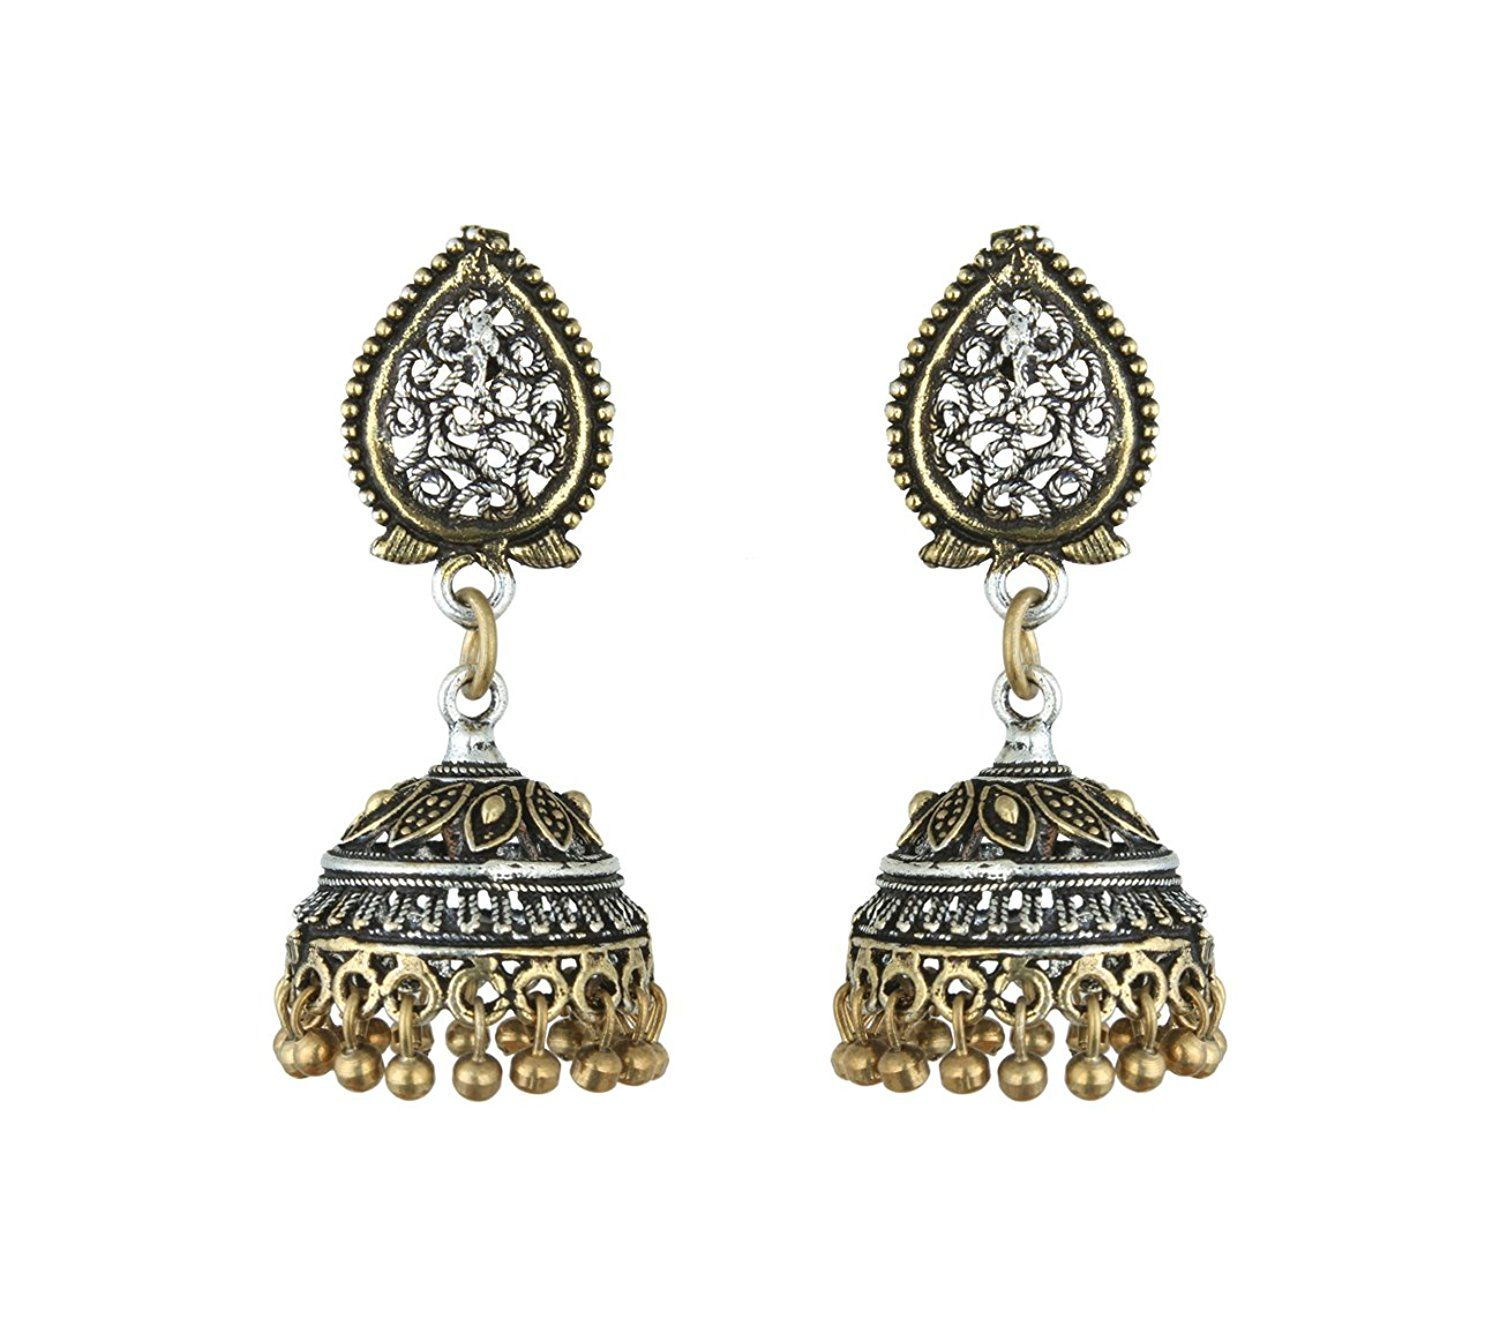 earrings sydney rajasthani william jewellery tribal foil silver rajasthan old glass christopher gold